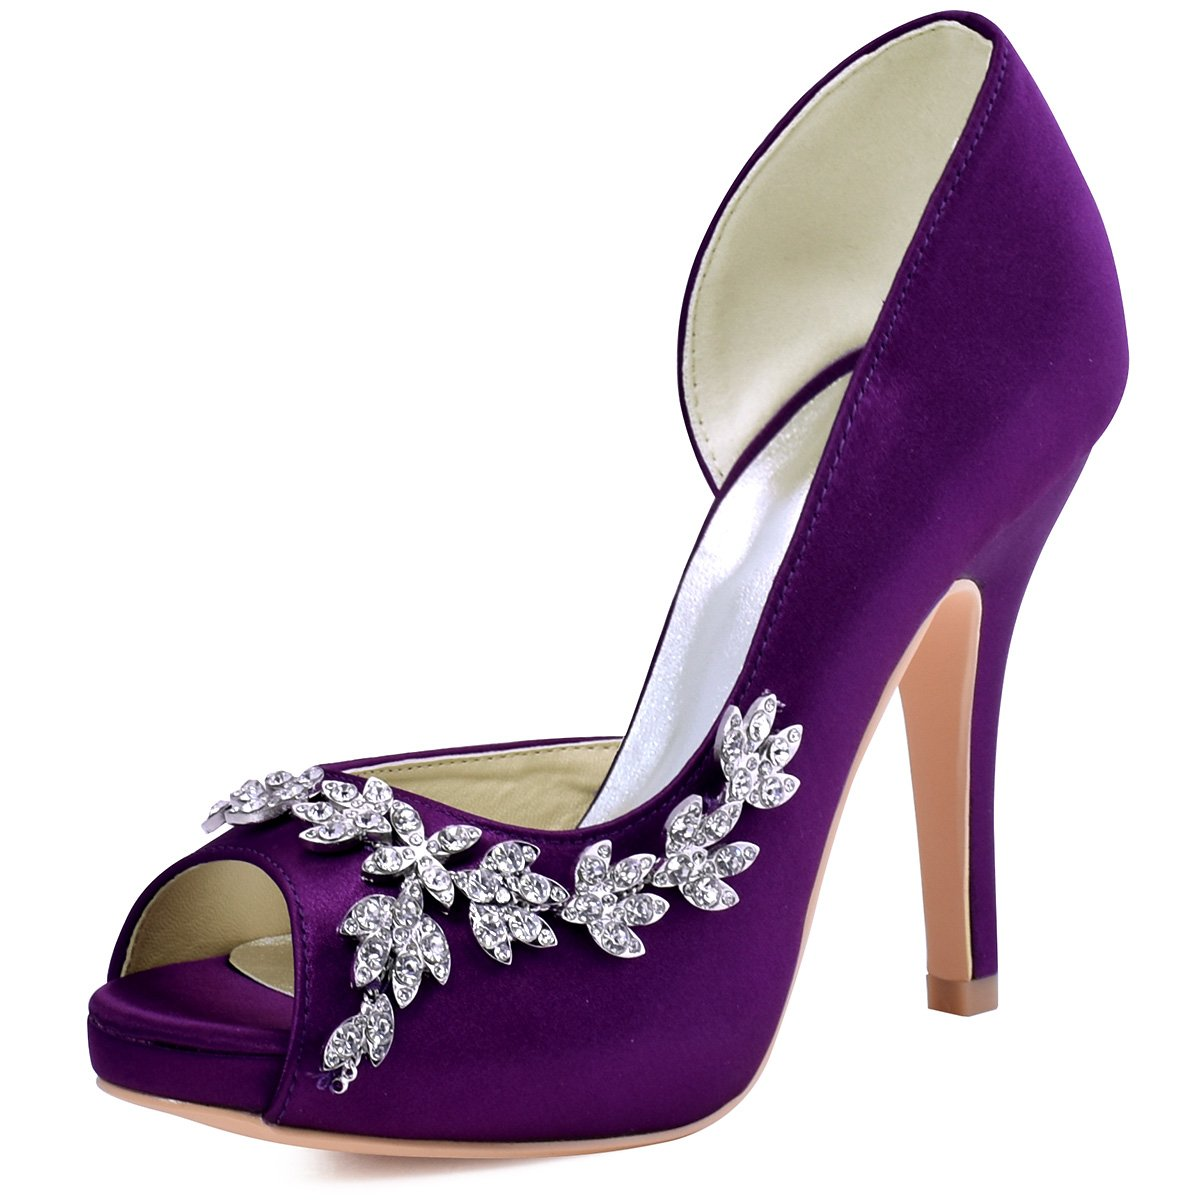 ElegantPark HP1560IAC Women's Peep Toe Platform High Heel Rhinestones Satin Wedding Party Dress Shoes Purple US 8